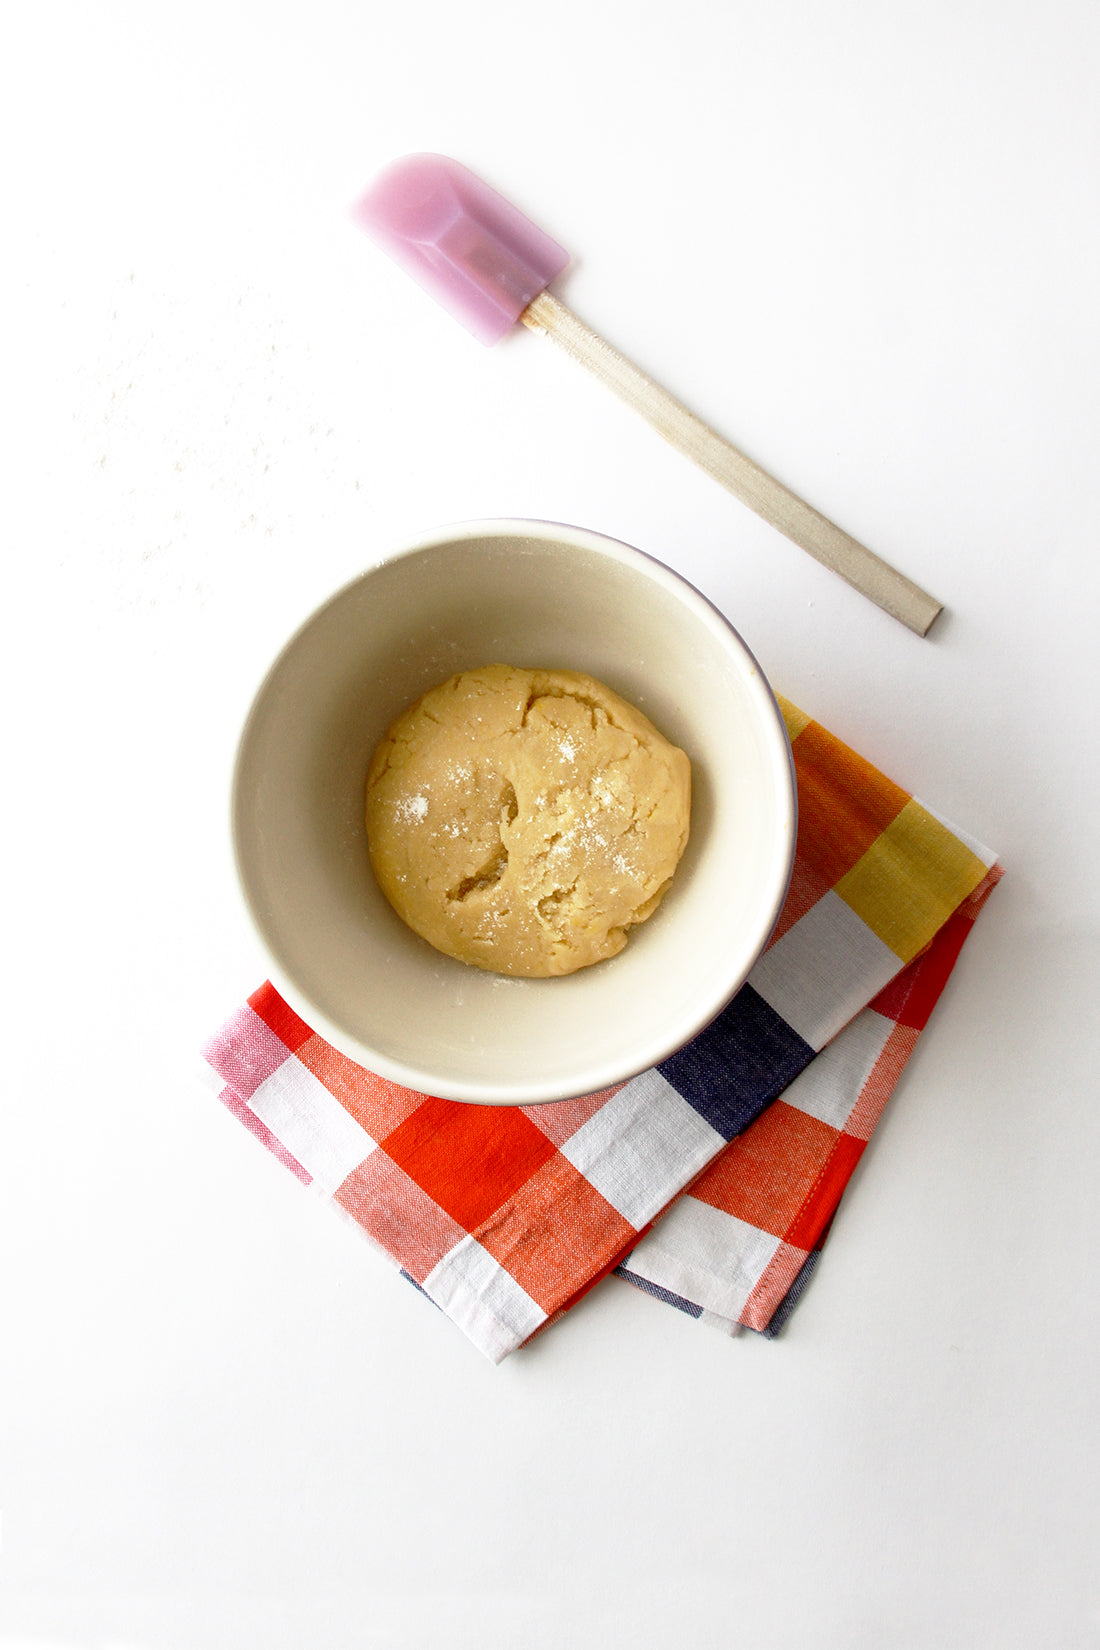 Image of the top of Miss Jones Baking Co Fruit Cart Tarts dough in a bowl above a towel and next to a purple spatula